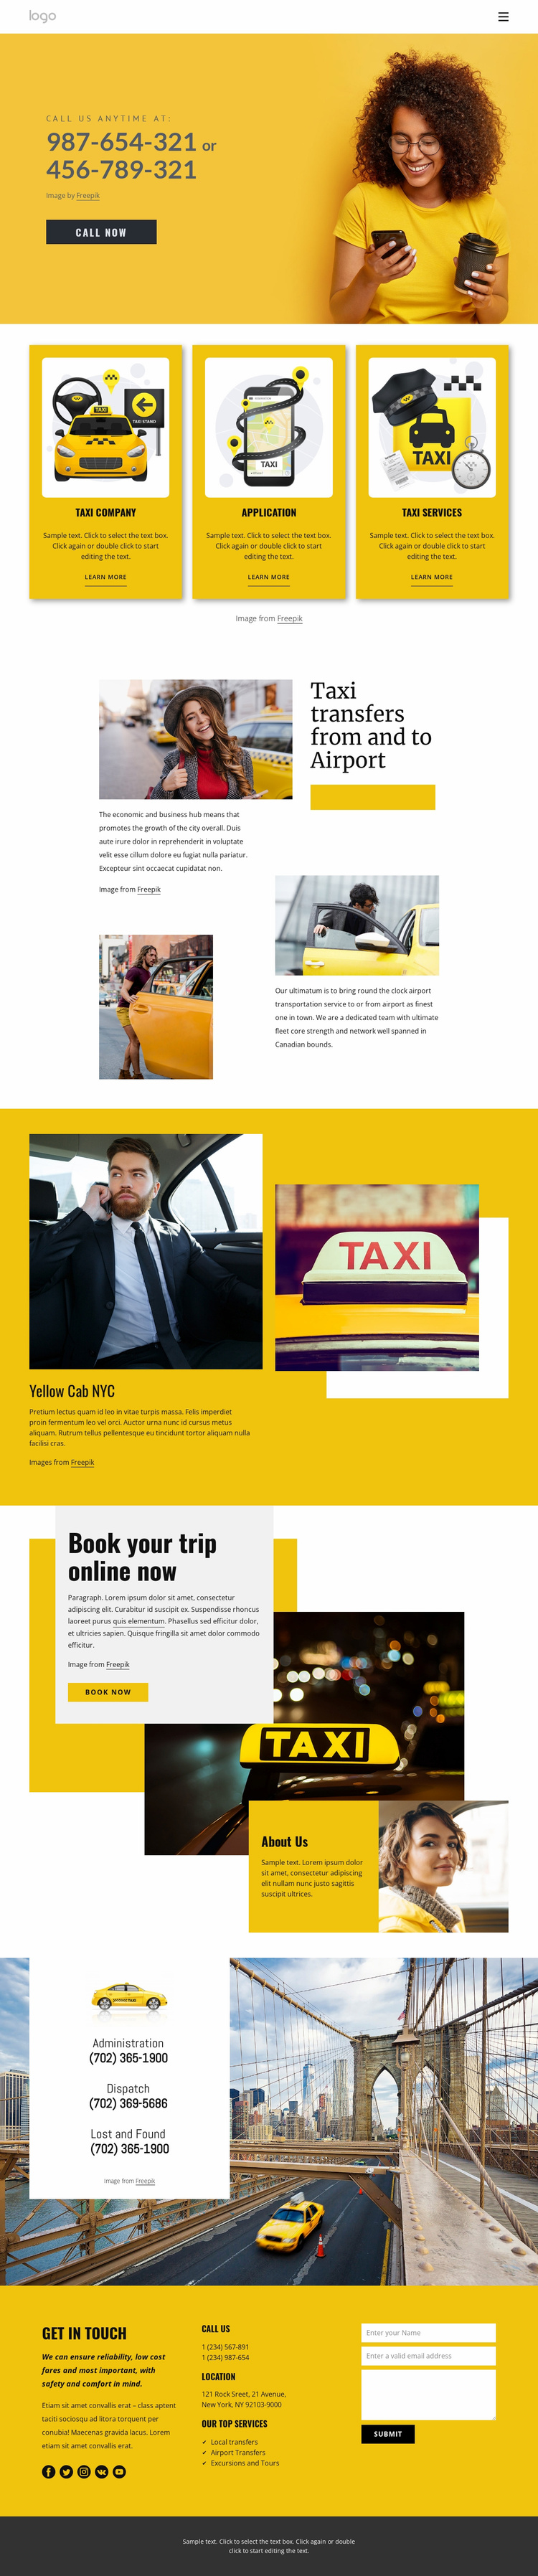 Quality taxi service Website Template